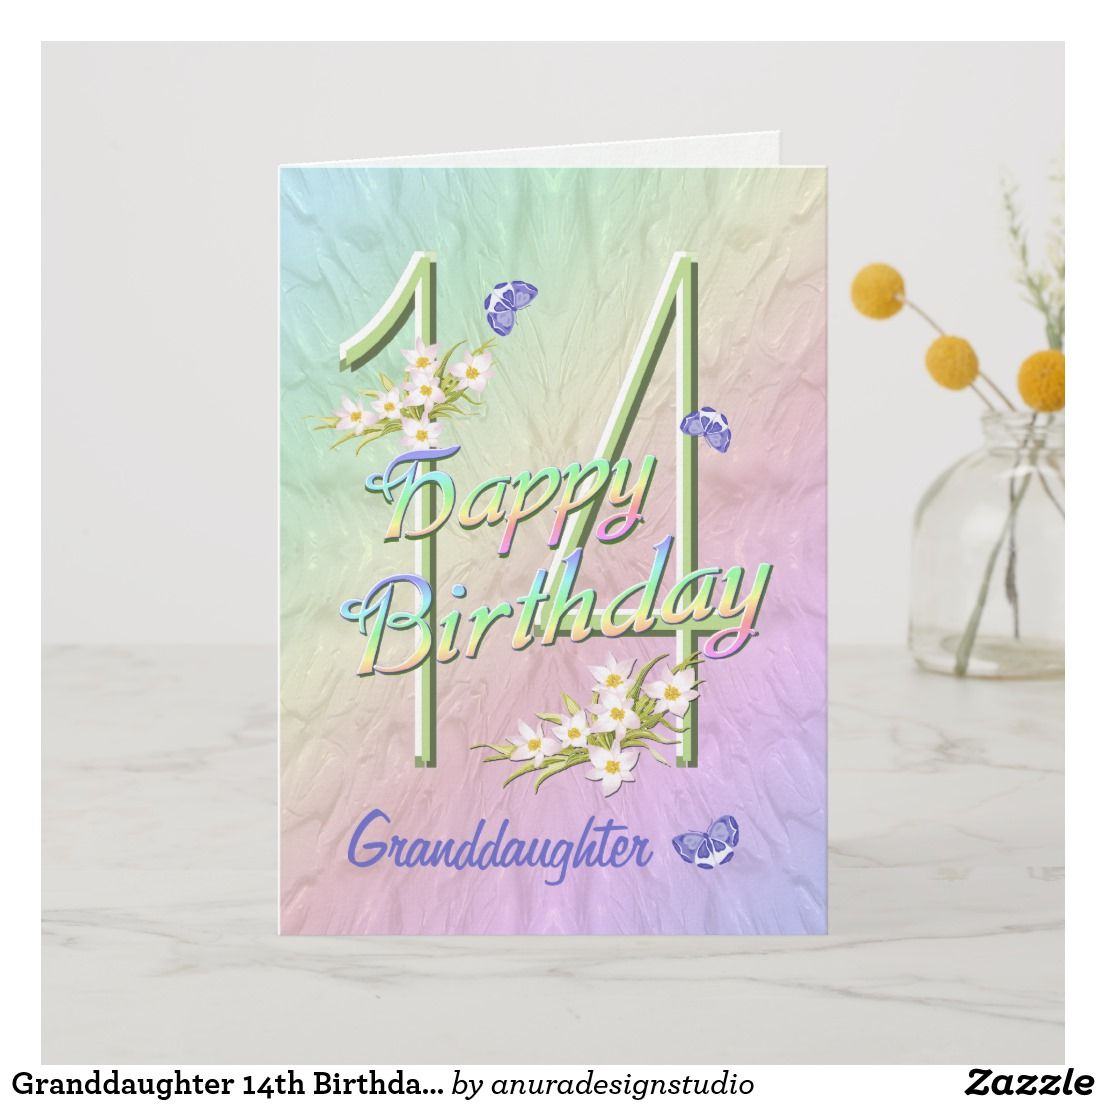 Granddaughter 14th Birthday Butterfly Garden Card | Zazzle.com #17thbirthday